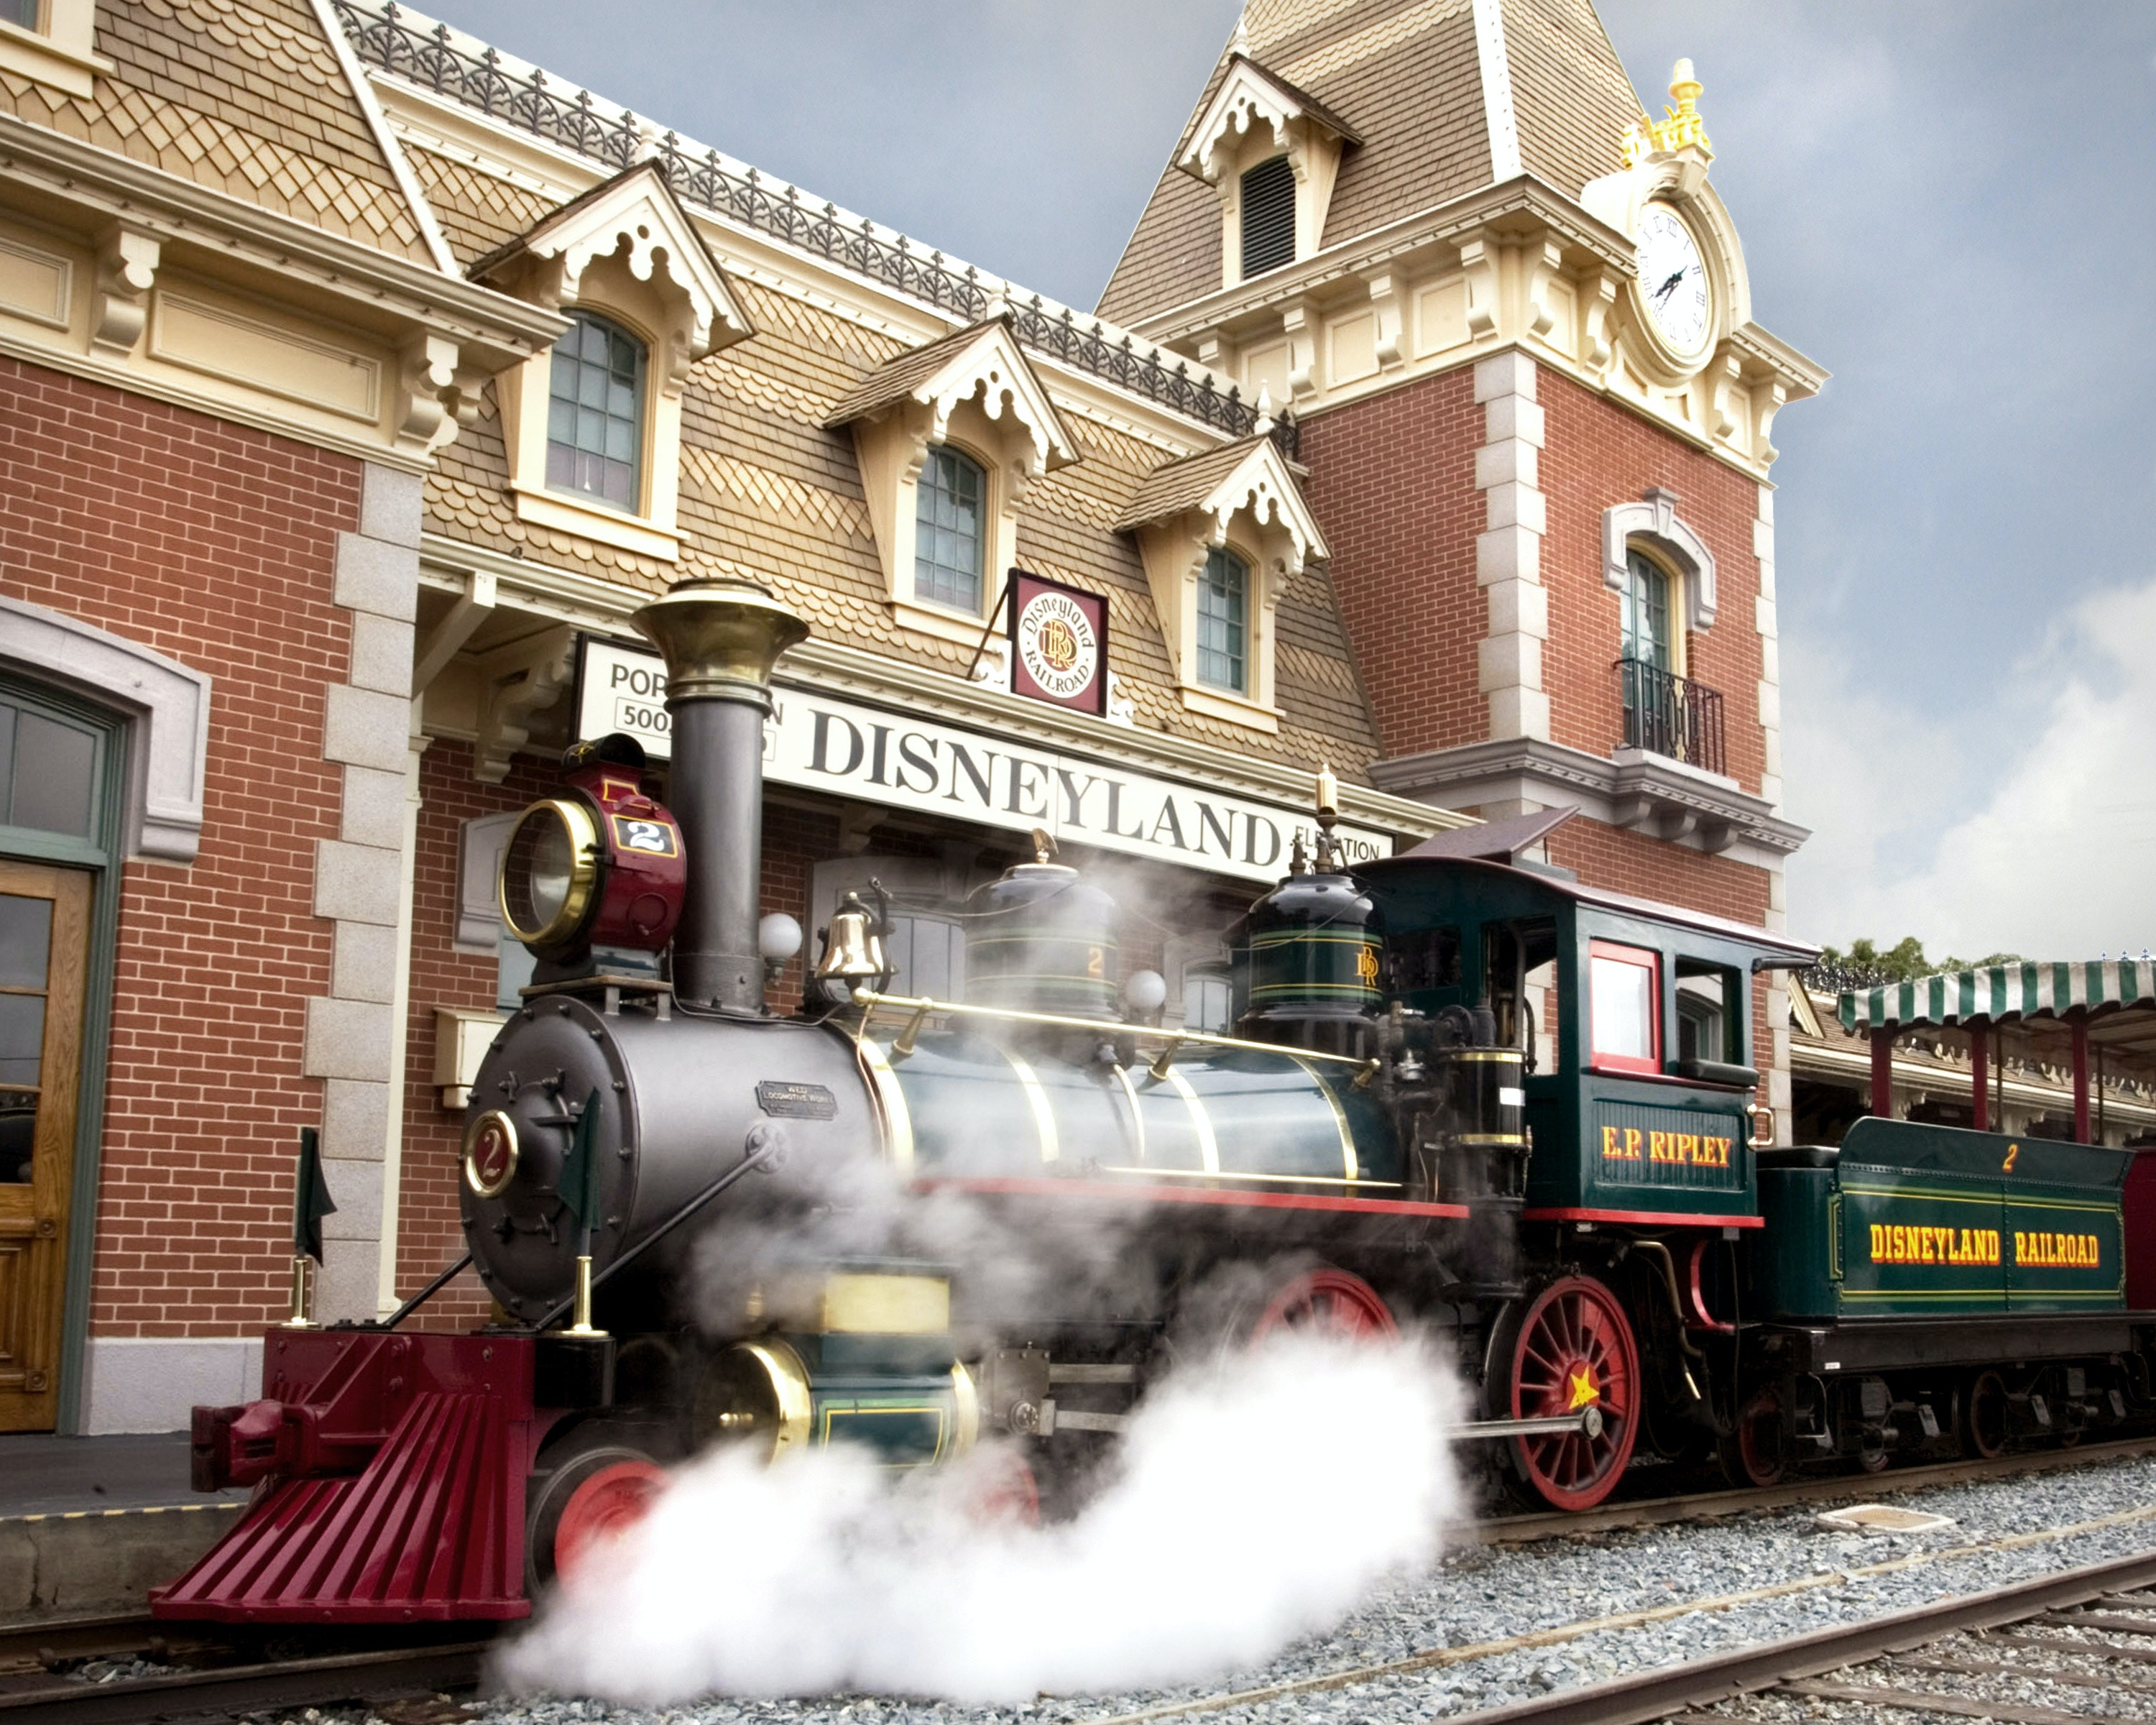 The Best Way to Tackle Disneyland With Small Kids Isn't What You Think